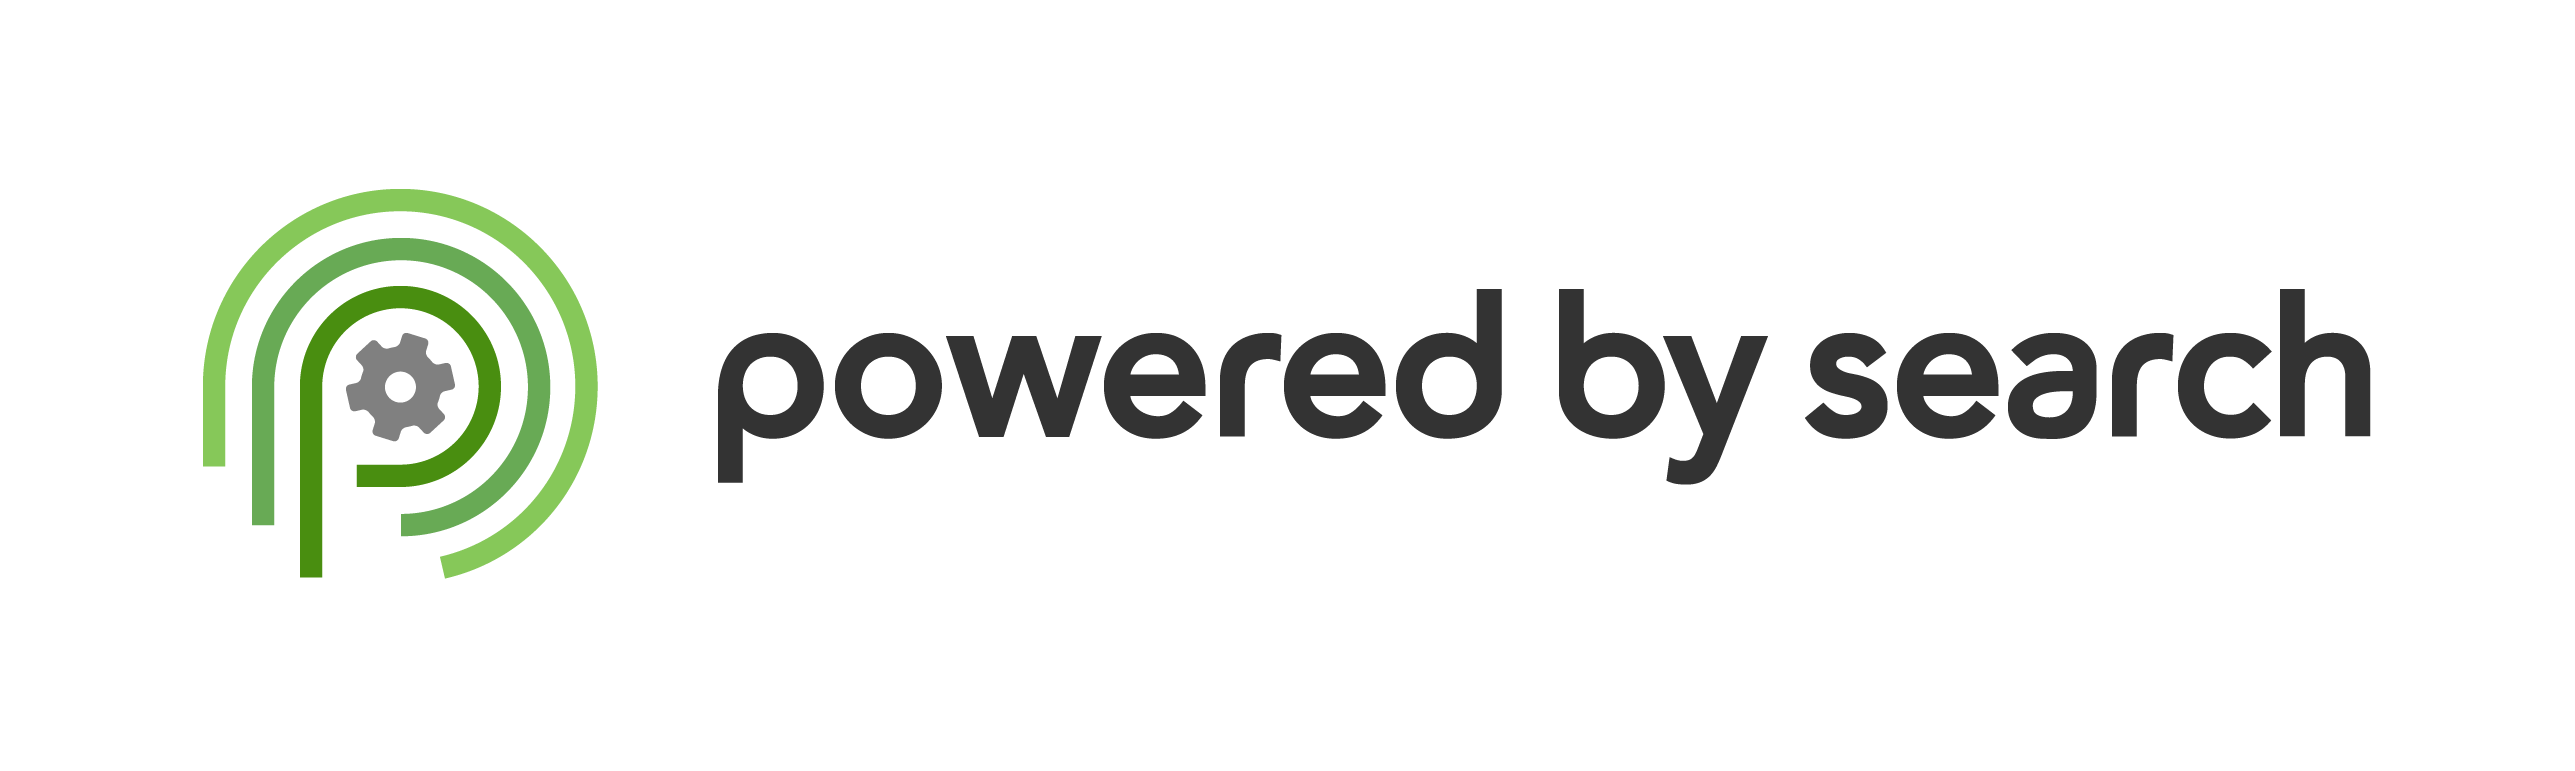 Powered by Search logo